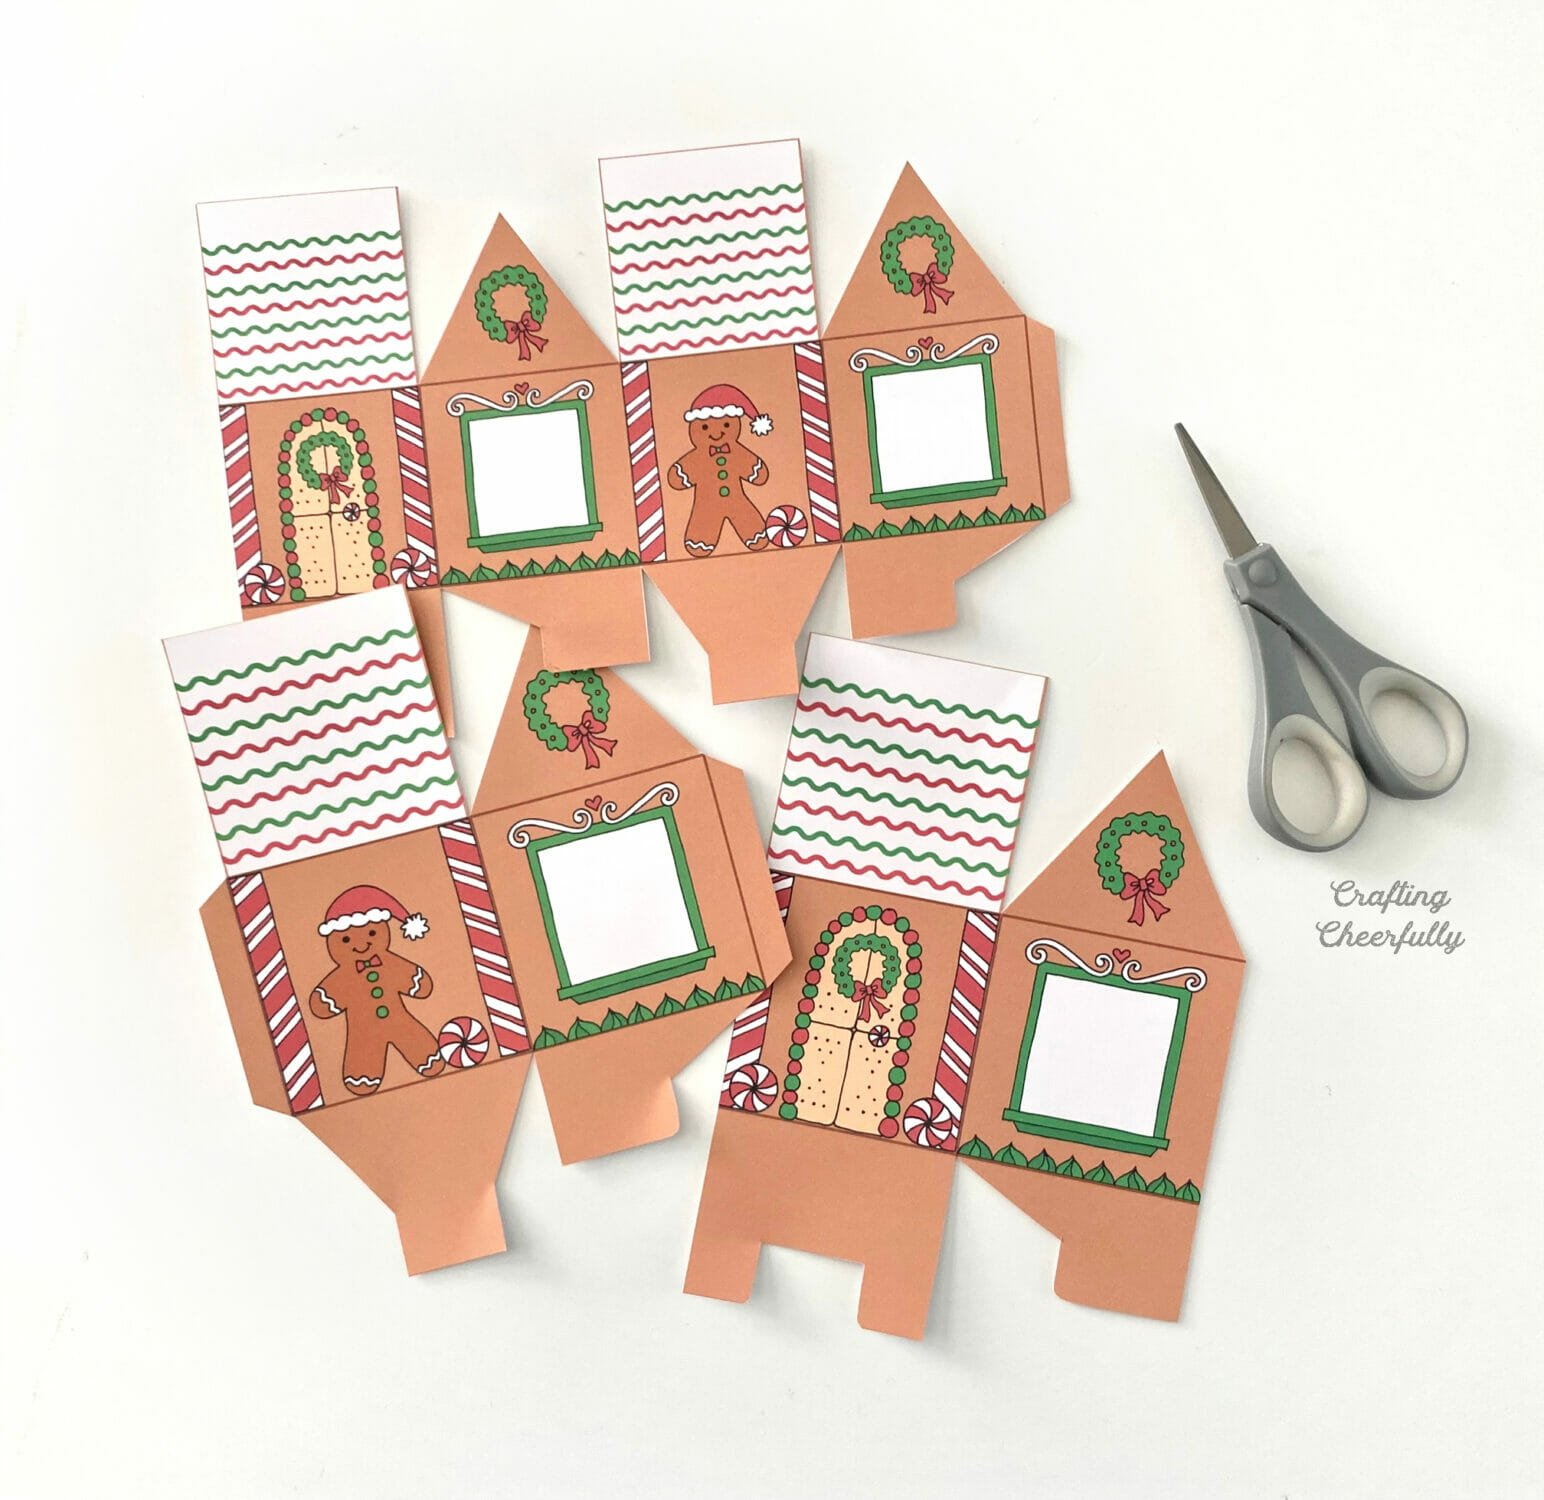 Two gingerbread house treat boxes lay next to a scissors.